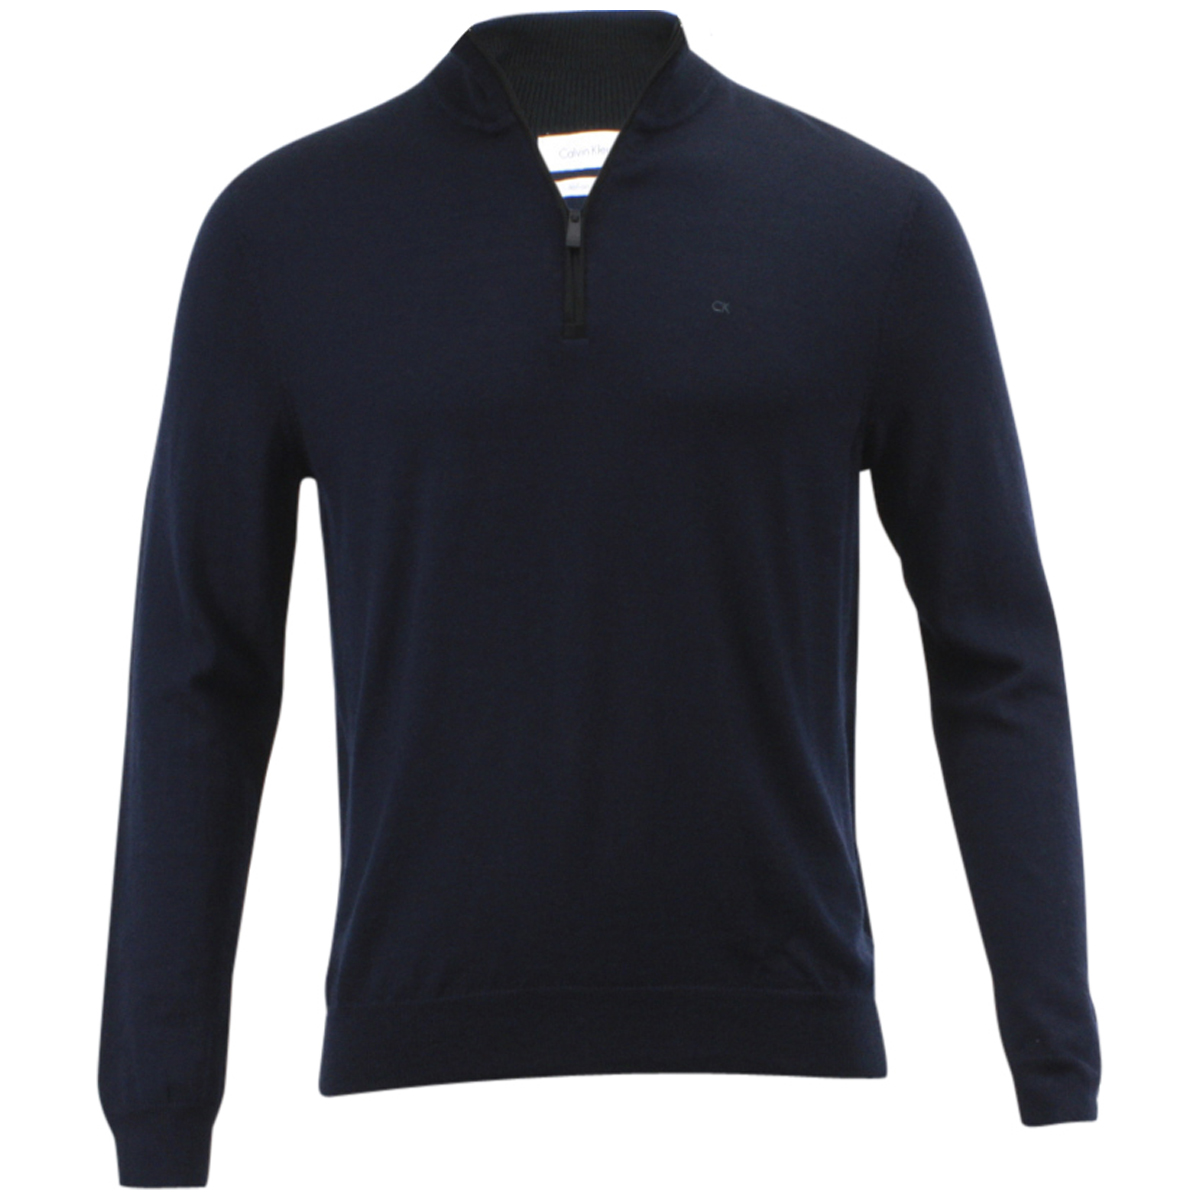 Calvin Klein Men s Merino End On End Long Sleeve 3 4 Zip Sweater Merino End On End; 401S304